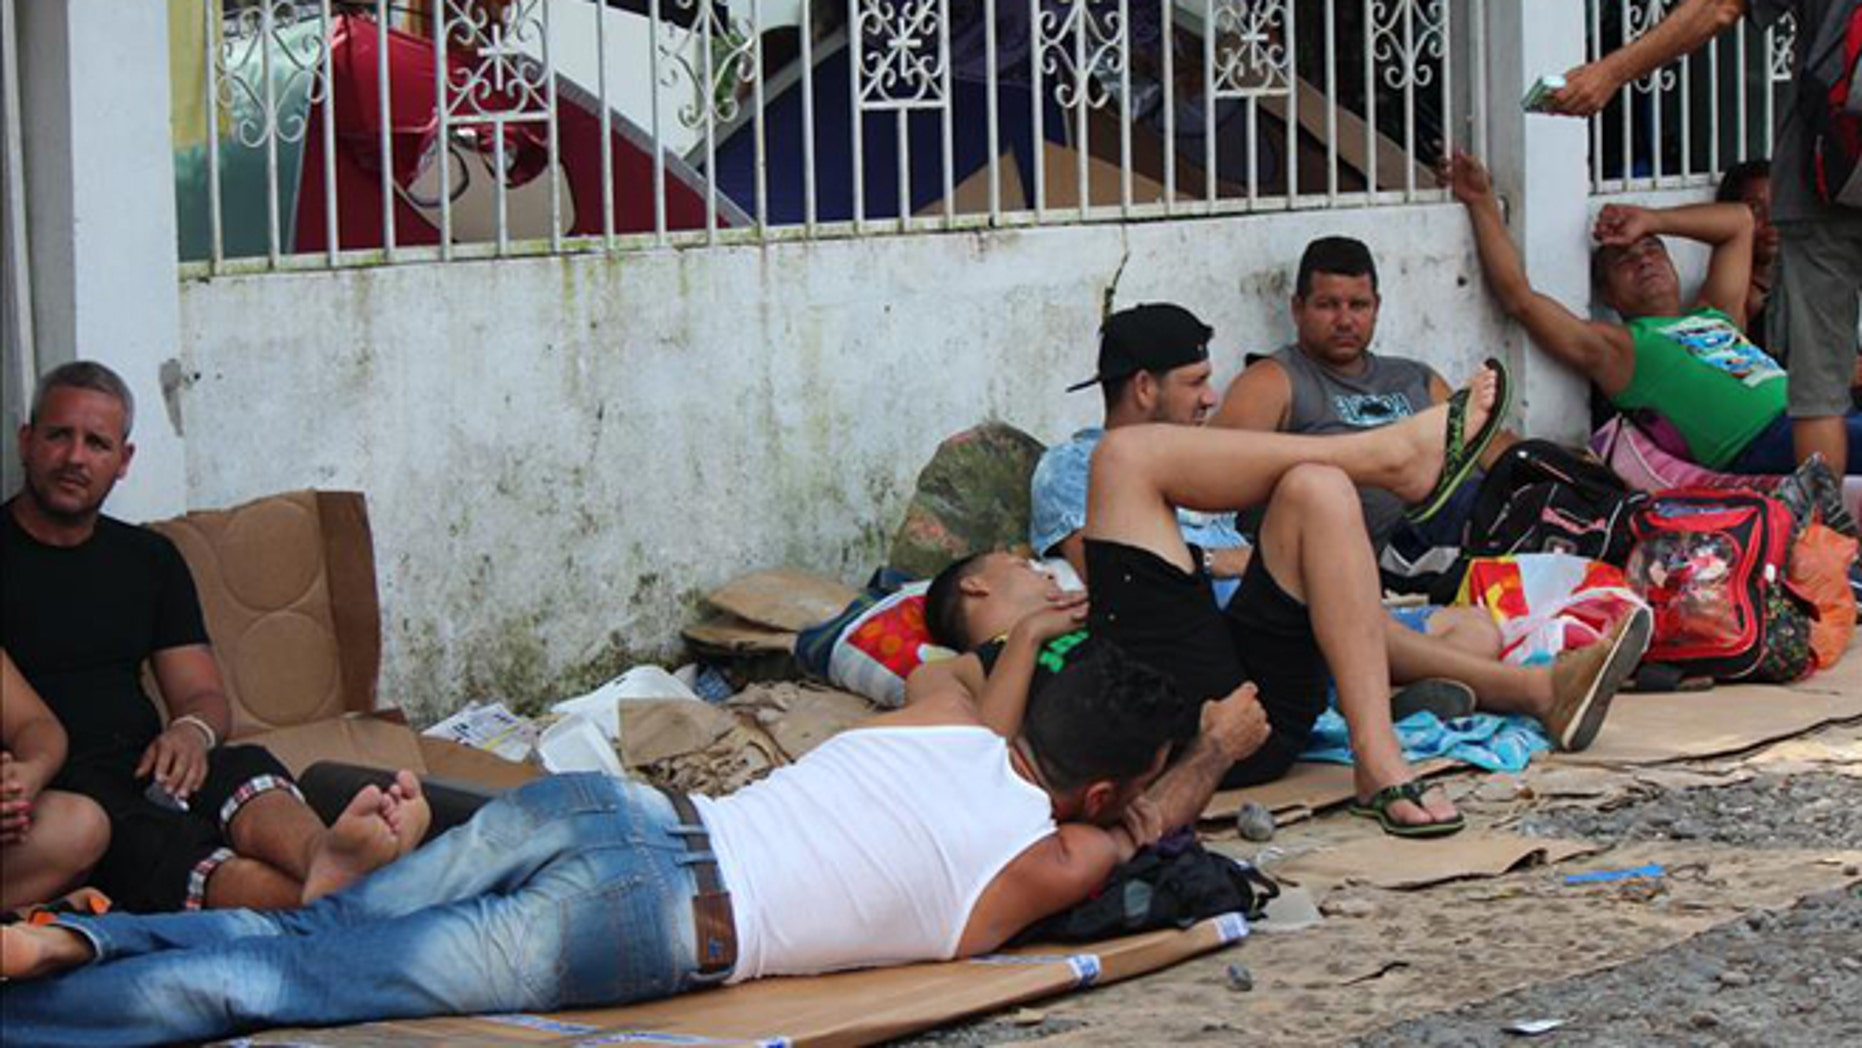 Some 800 Cubans spent Christmas Eve at the Panamanian-Costa Rican border.